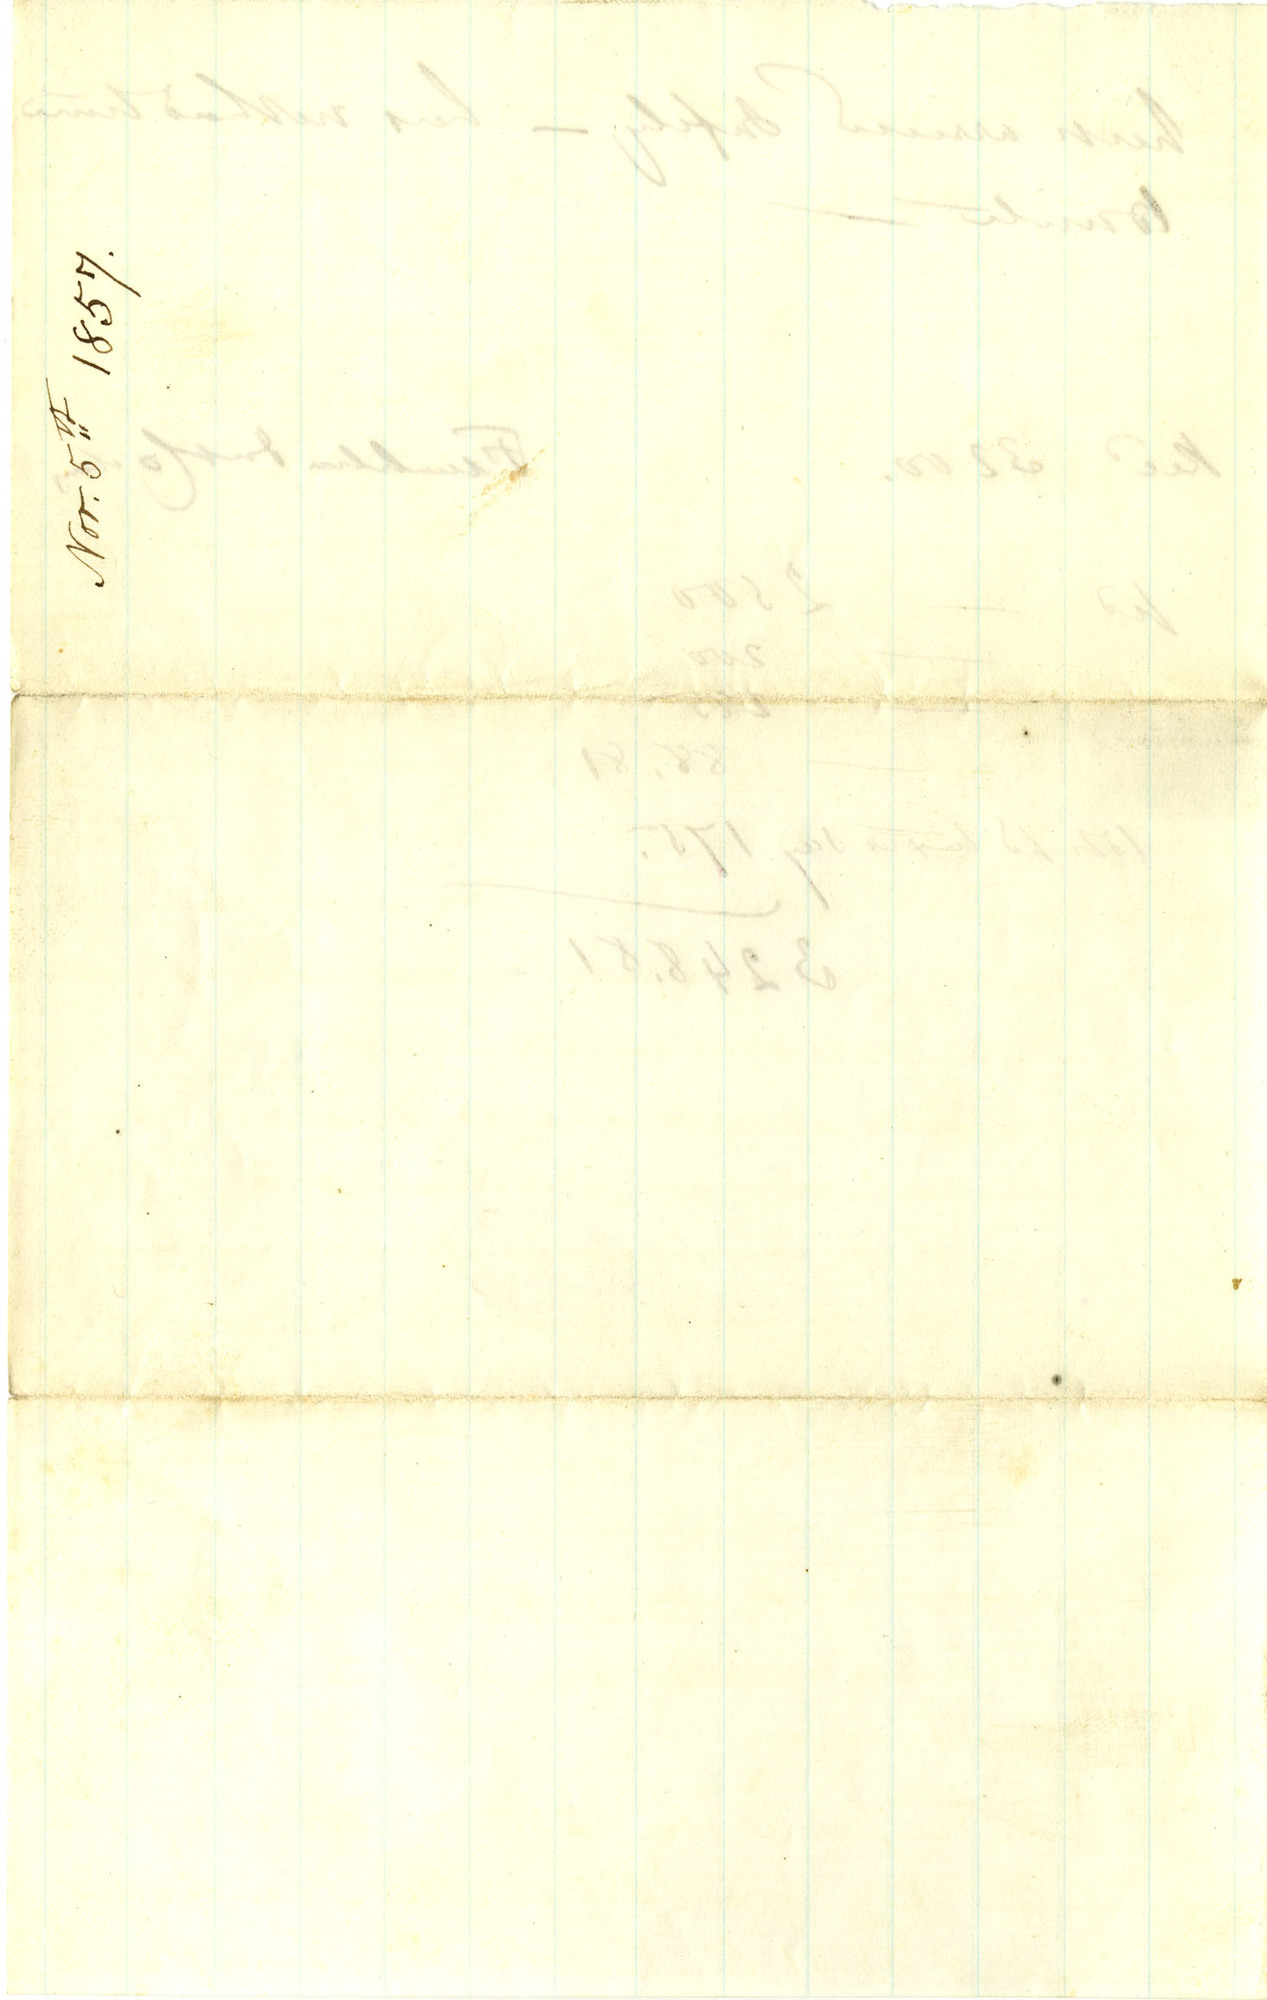 http://spec.lib.vt.edu/pickup/Omeka_upload/Ms1989_021_NelsonFamily_Box1_1857_1105d.jpg